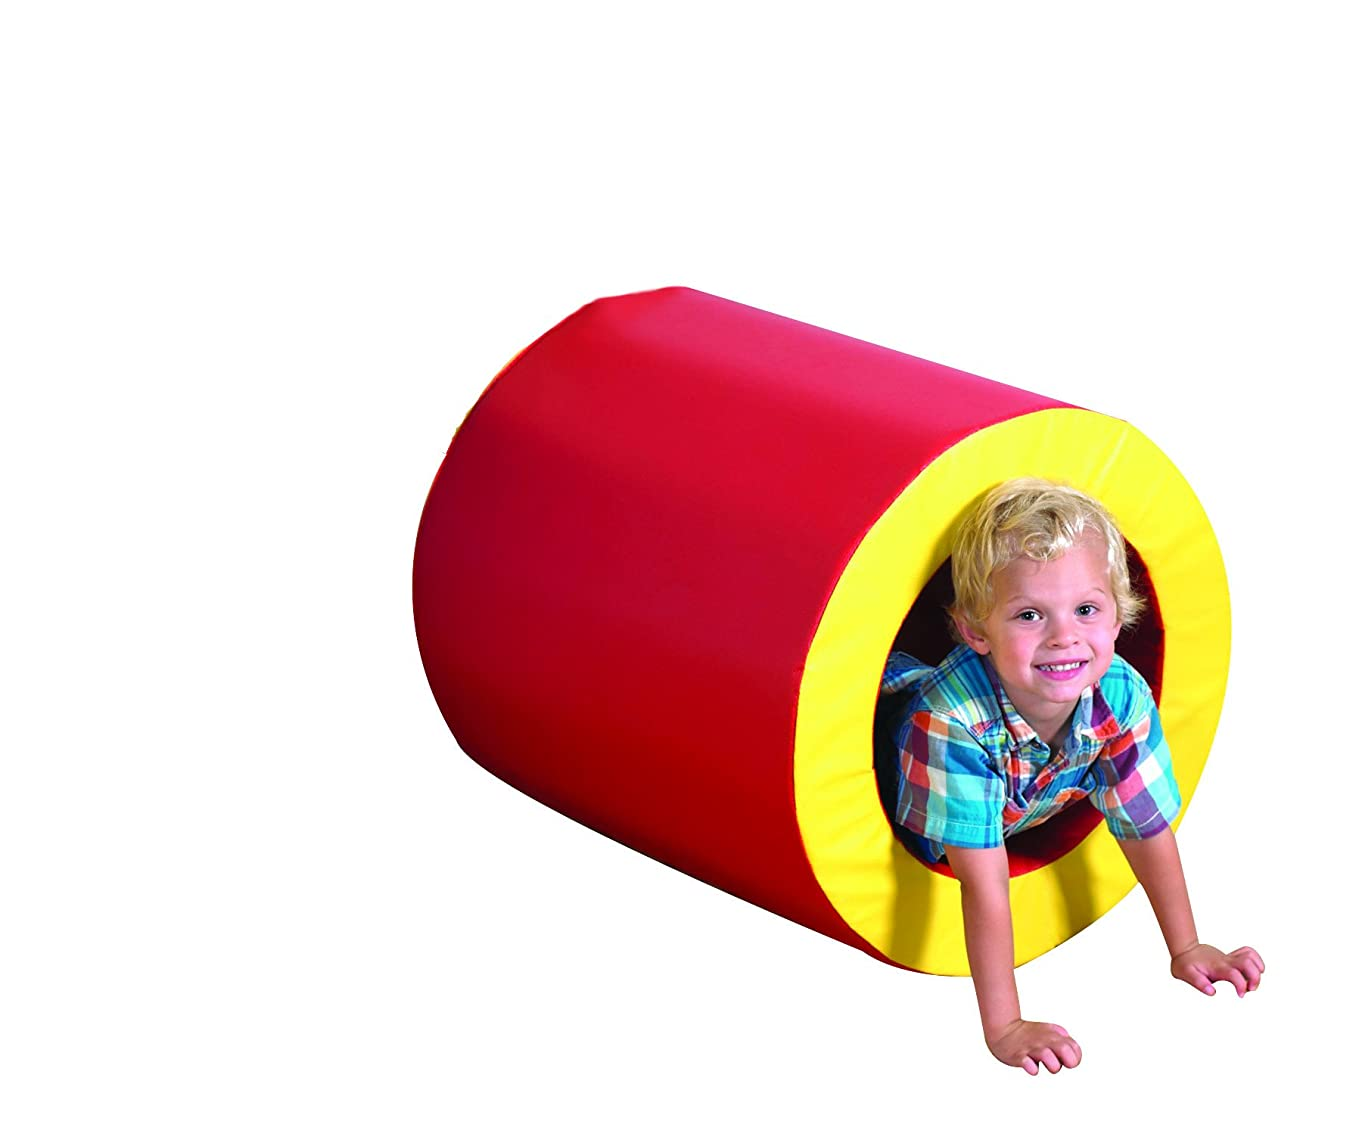 Childrens Factory CF321-300 Toddler Tumble Tunnel, Grade: Kindergarten to 4